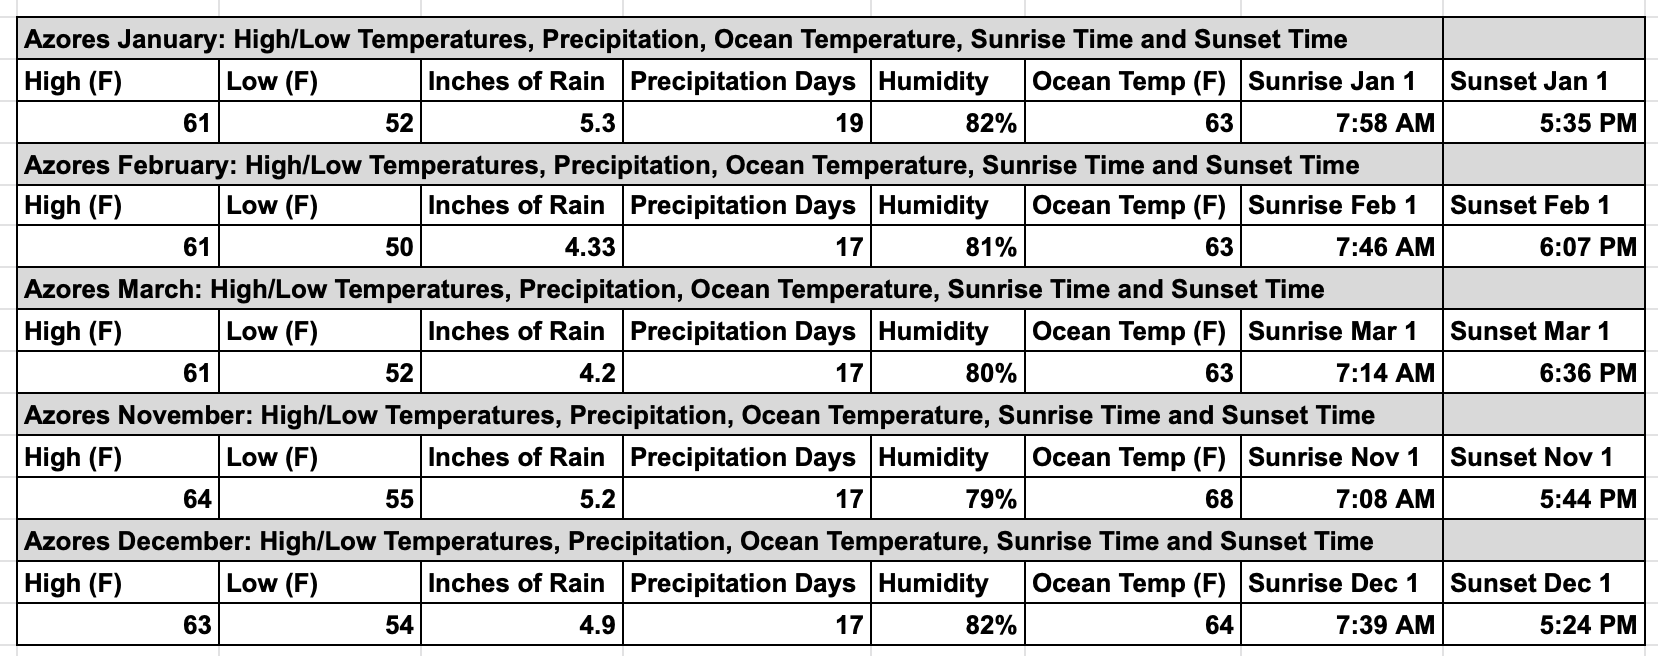 Azores-Weather-in-the Late-Fall-Winter-Chart-Temperature-Precipitation-Humidity